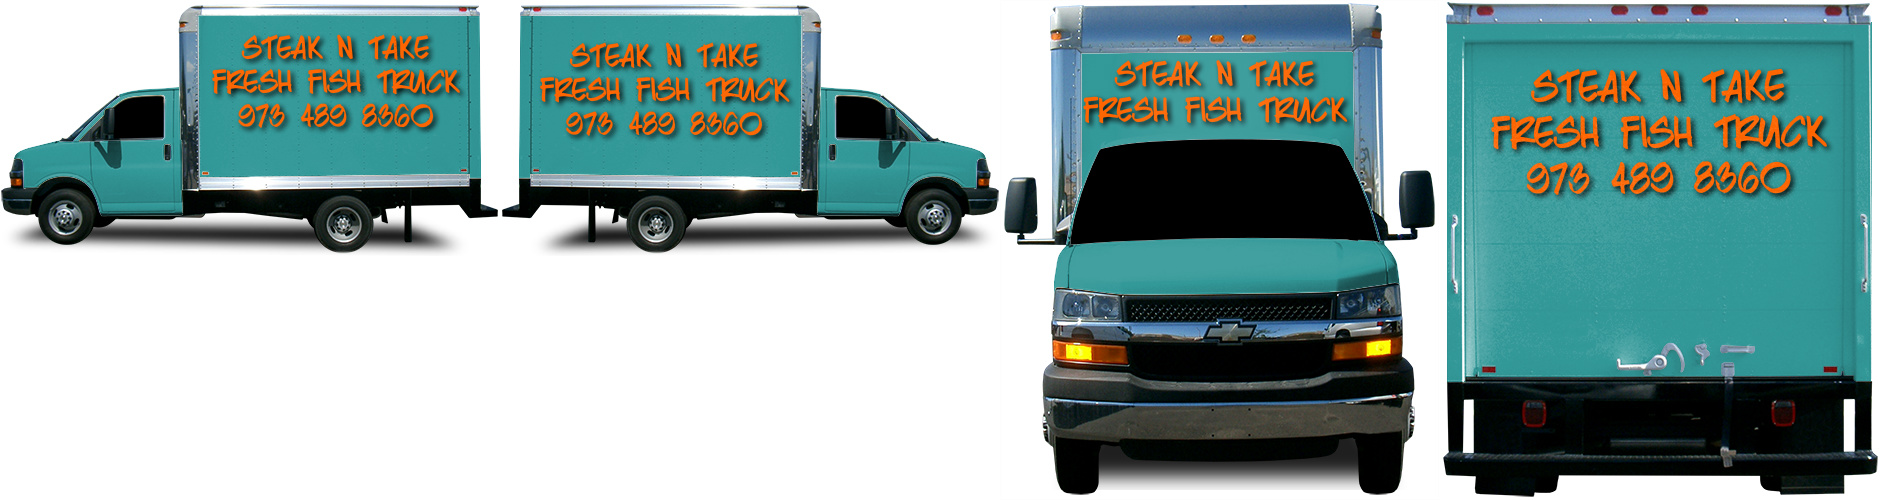 Customize My Truck >> Box Truck Wrap Custom Design 26247 By New Designer 29307